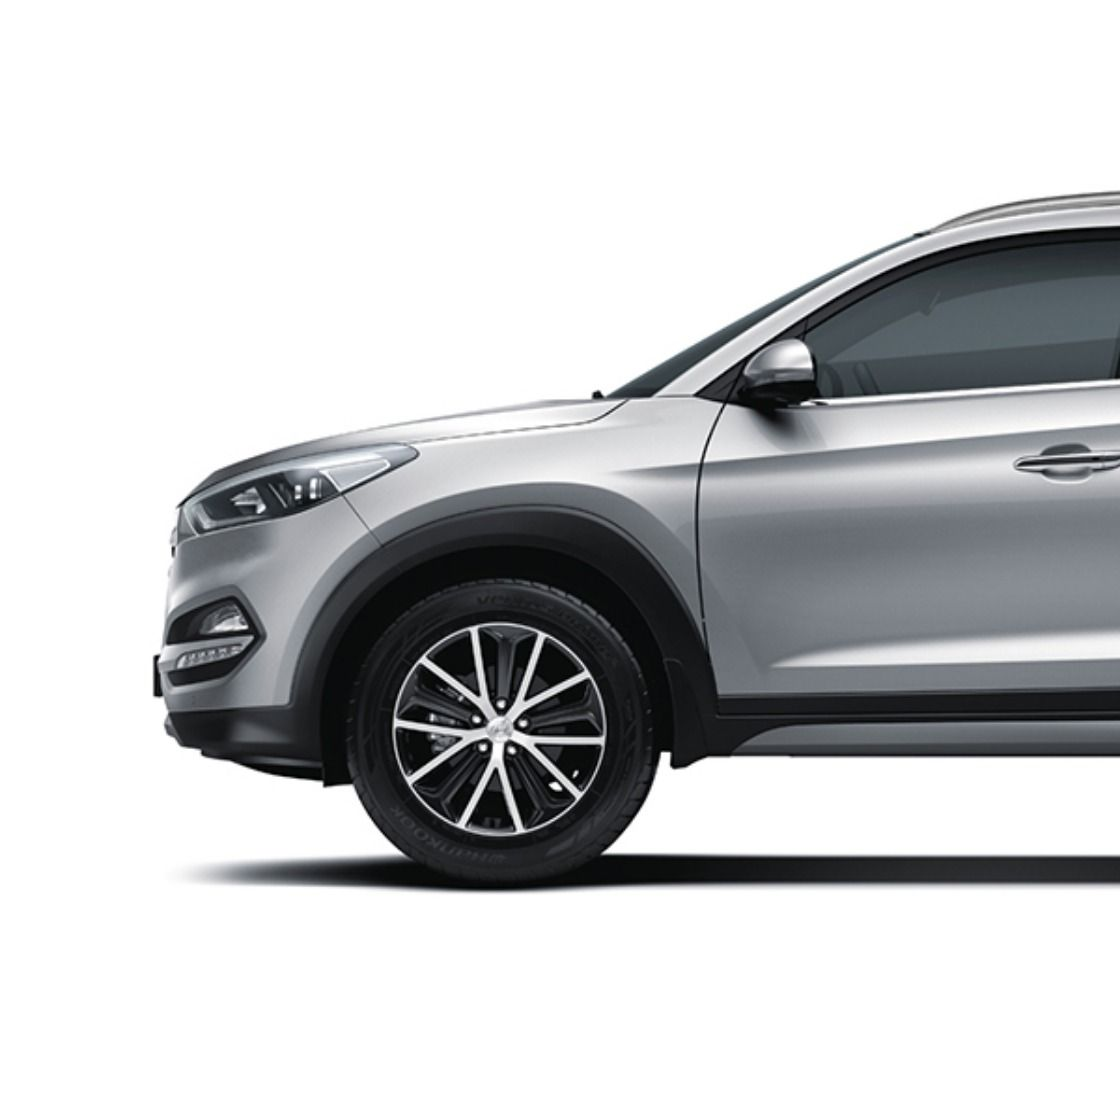 The #sleek And Bold #SUV Of Hyundai #Tucson. (With Images